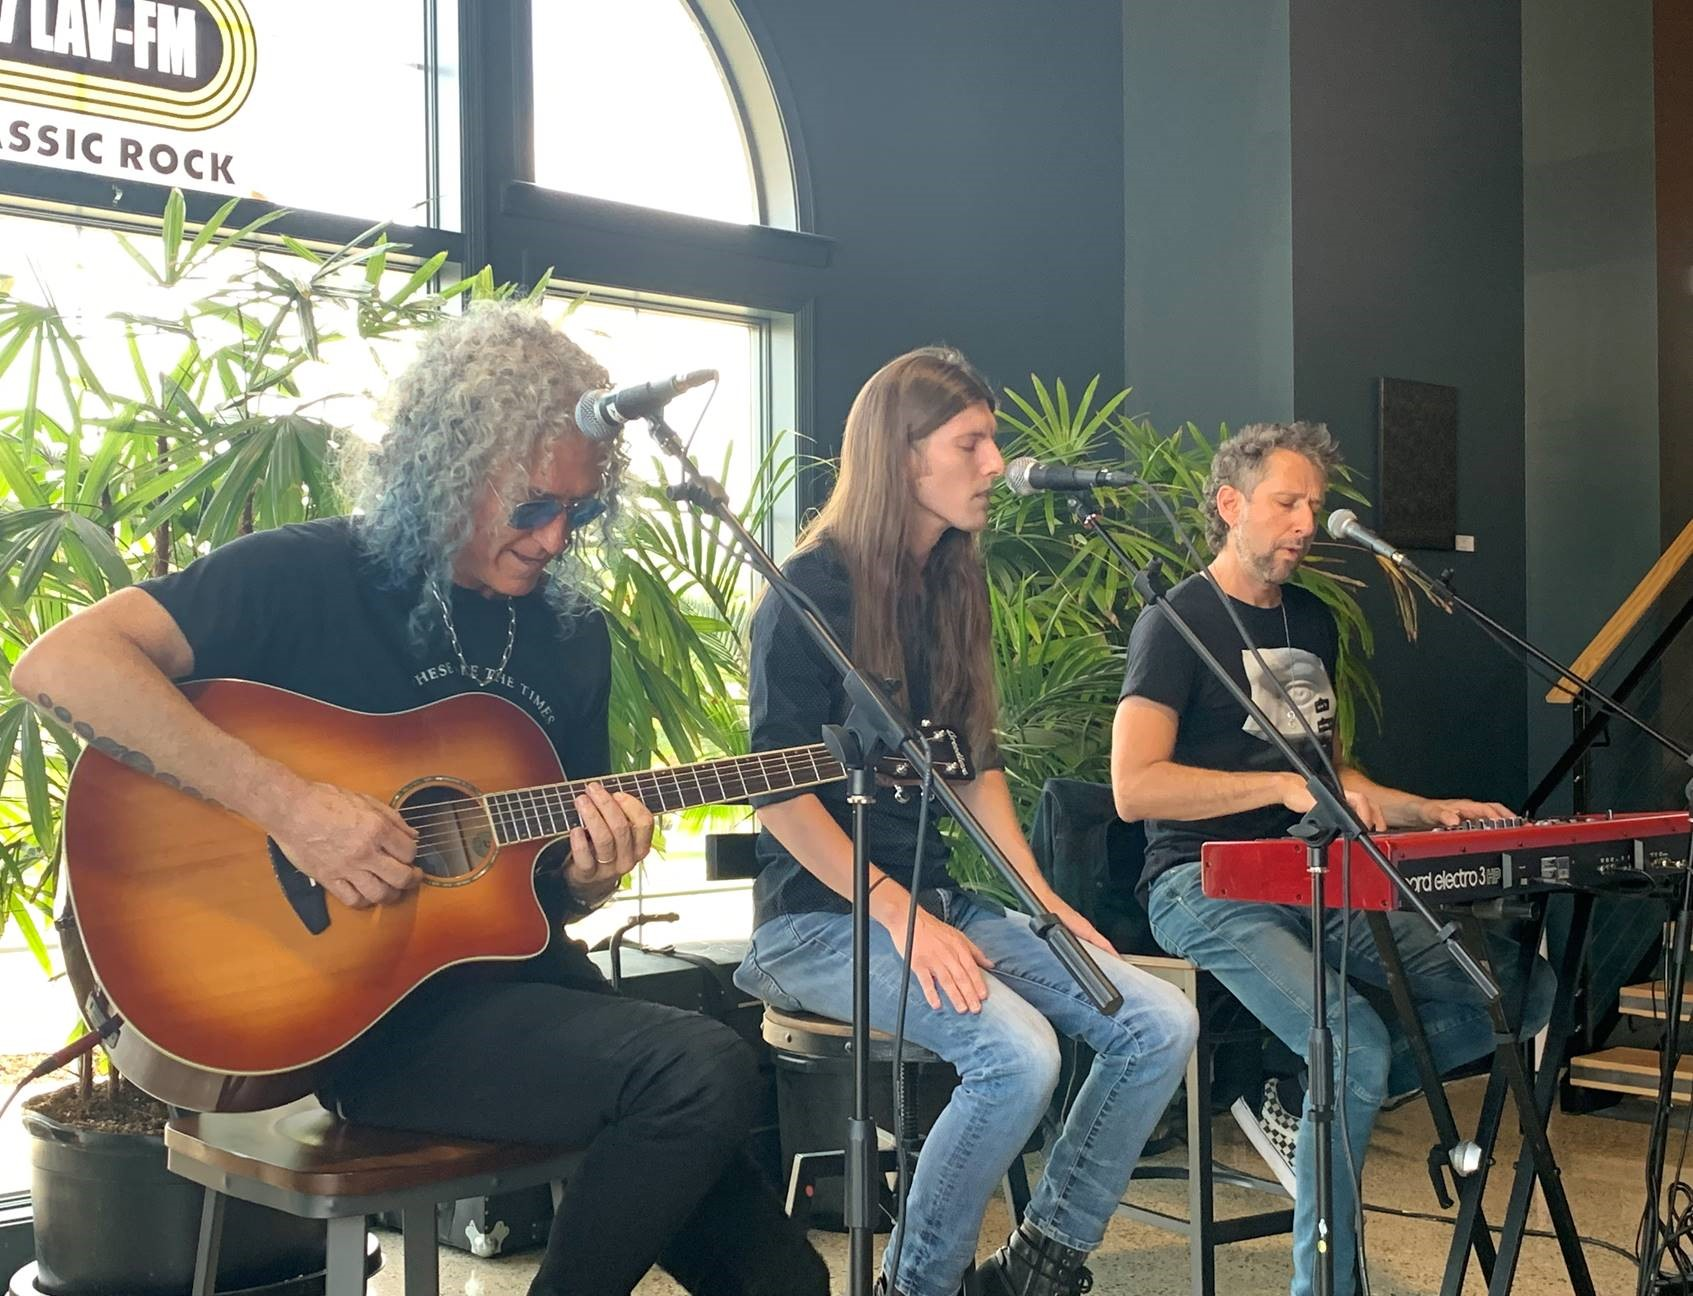 An acoustic set Bruce Watson & Michael Bluestein of Foreigner with guest singer Eric Harmon of Reverend Jack. (image courtesy of Pike Brewing)